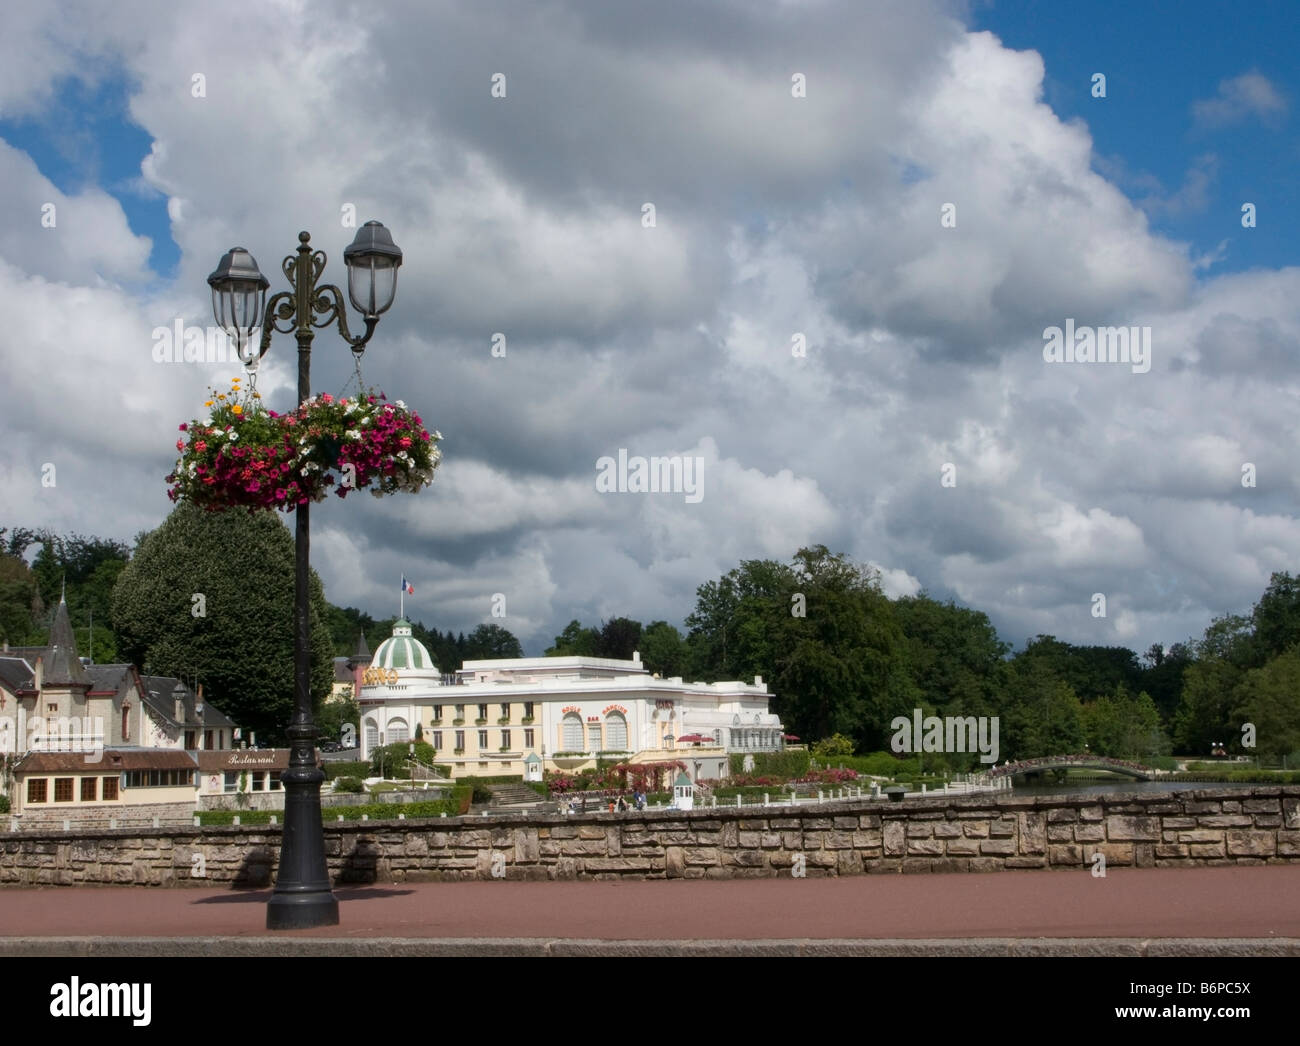 Park lake and casino at Bagnoles de l Orne which is in the Orne 61 departement of France - Stock Image